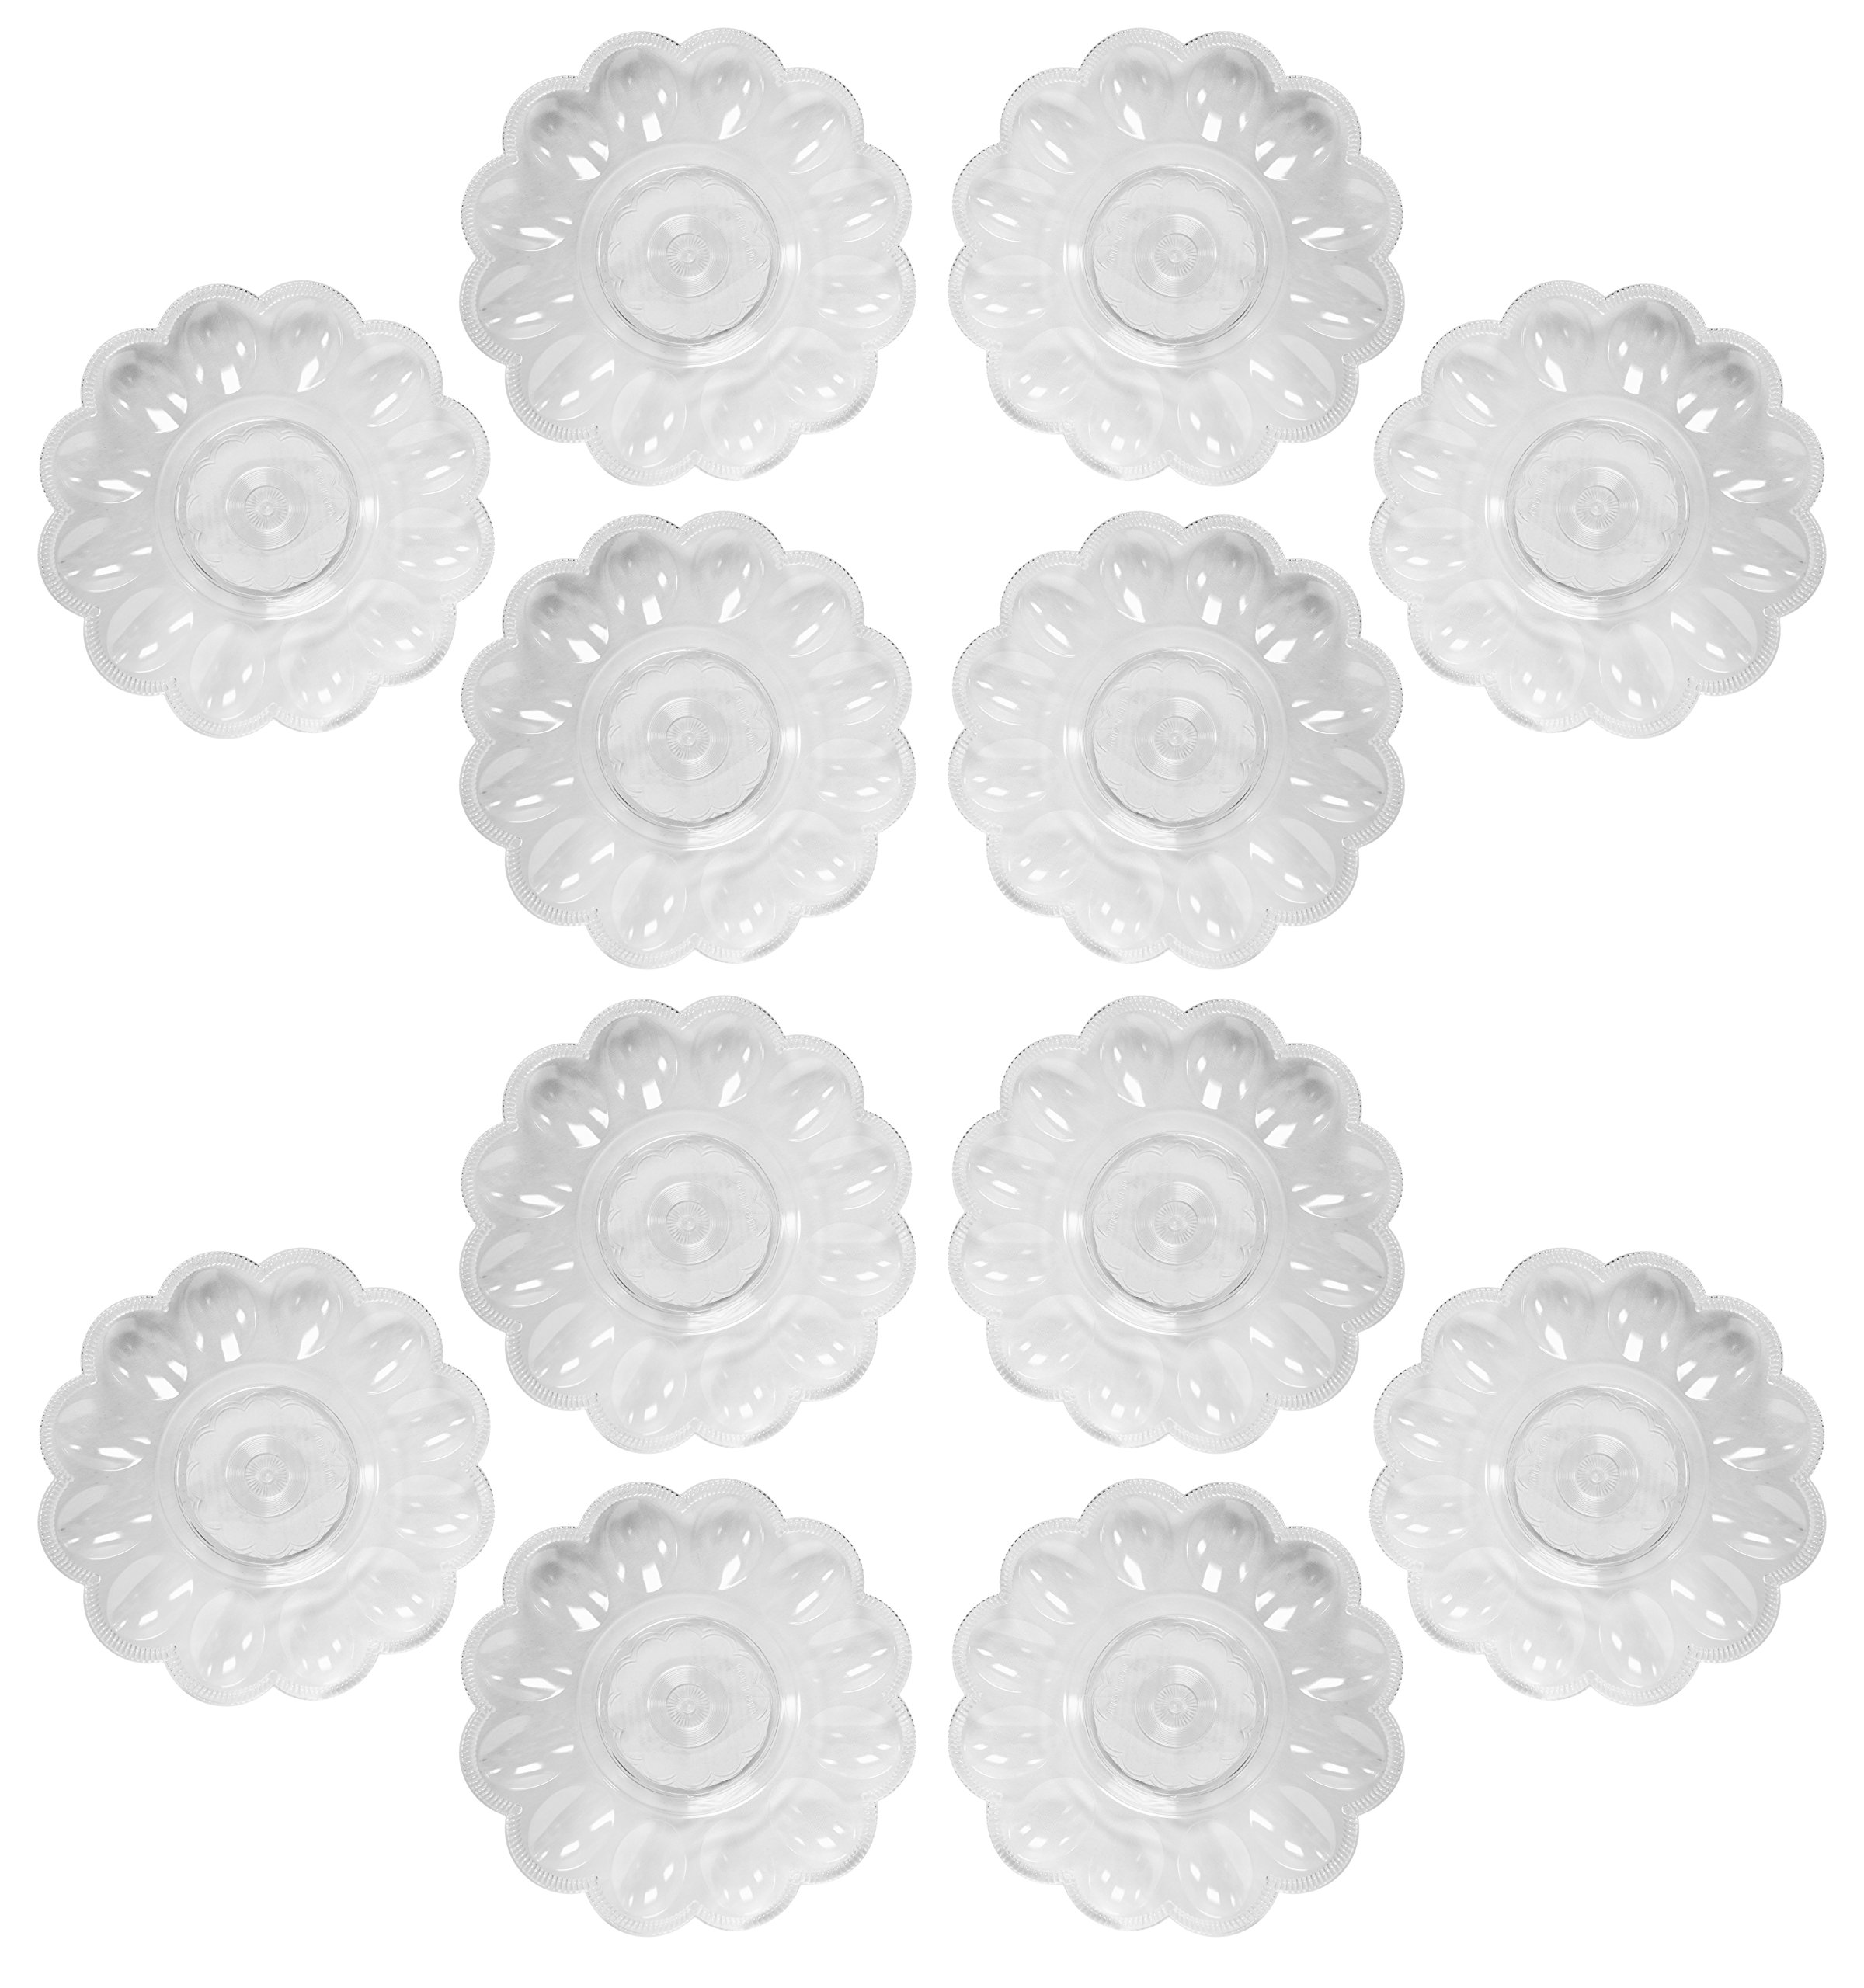 Deviled Egg Crystal Clear 9.5'' Diameter Presence Serving Trays! Perfect for Any Party or Social Gathering! (12)